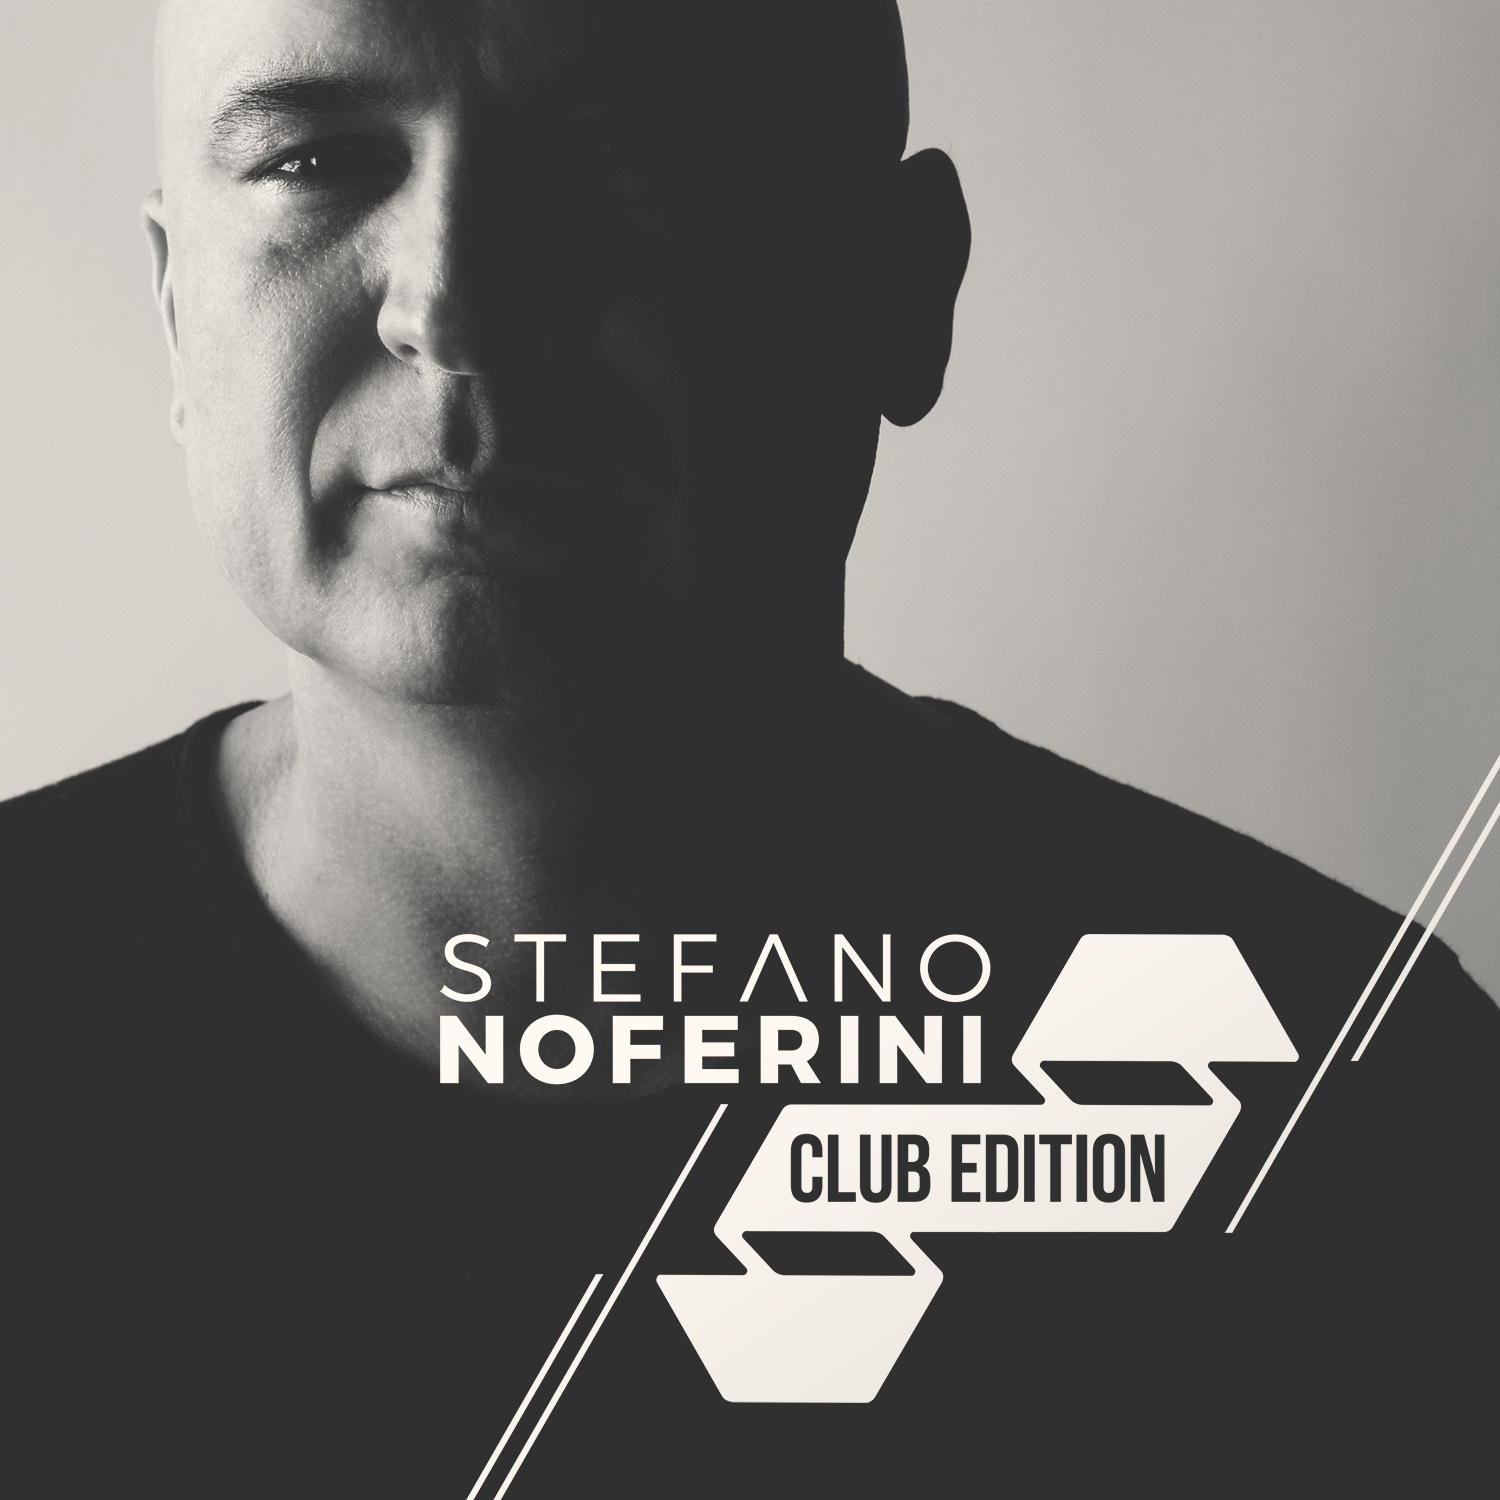 Delta Podcasts - Club Edition by Stefano Noferini (23.11.2017)